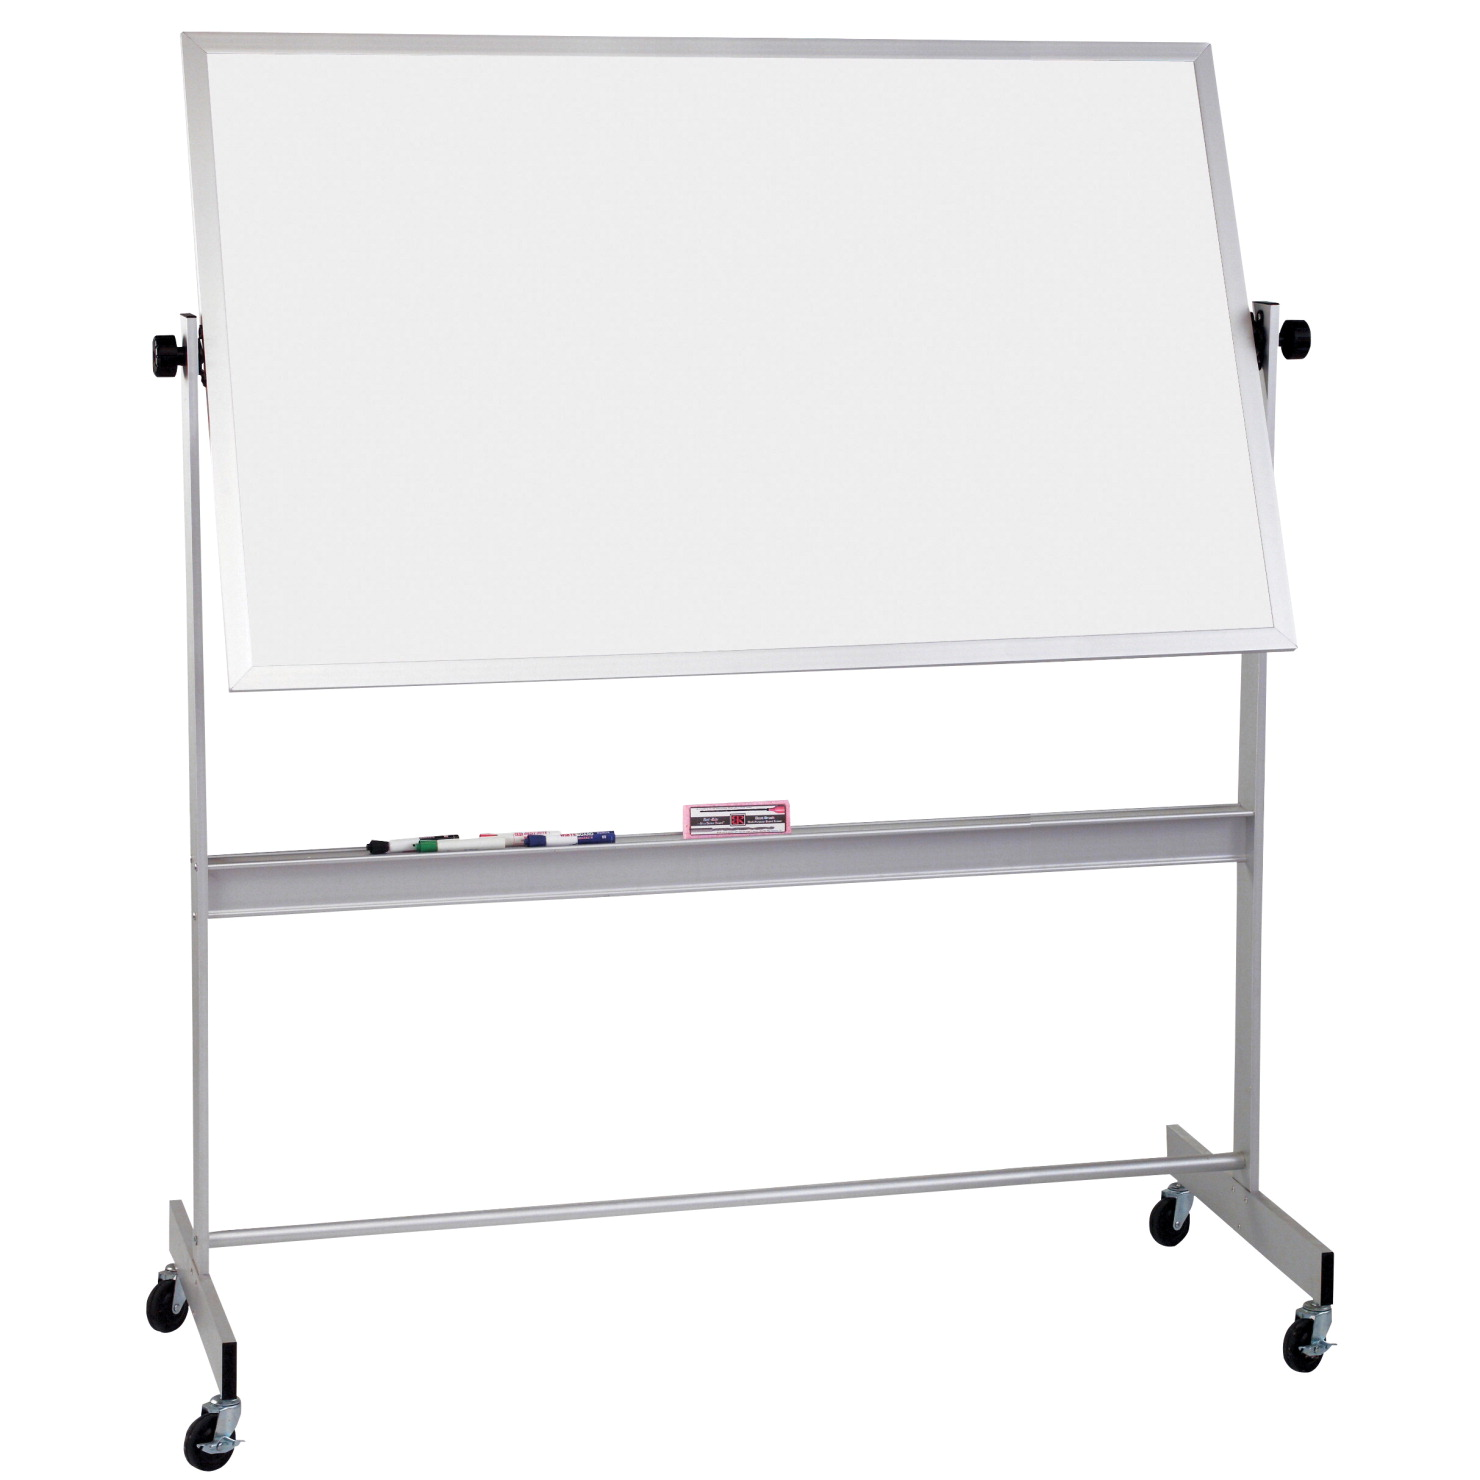 Best-Rite Deluxe Reversible Board, 4 H x 8 W ft, Aluminum Frame, Porcelain Markerboard